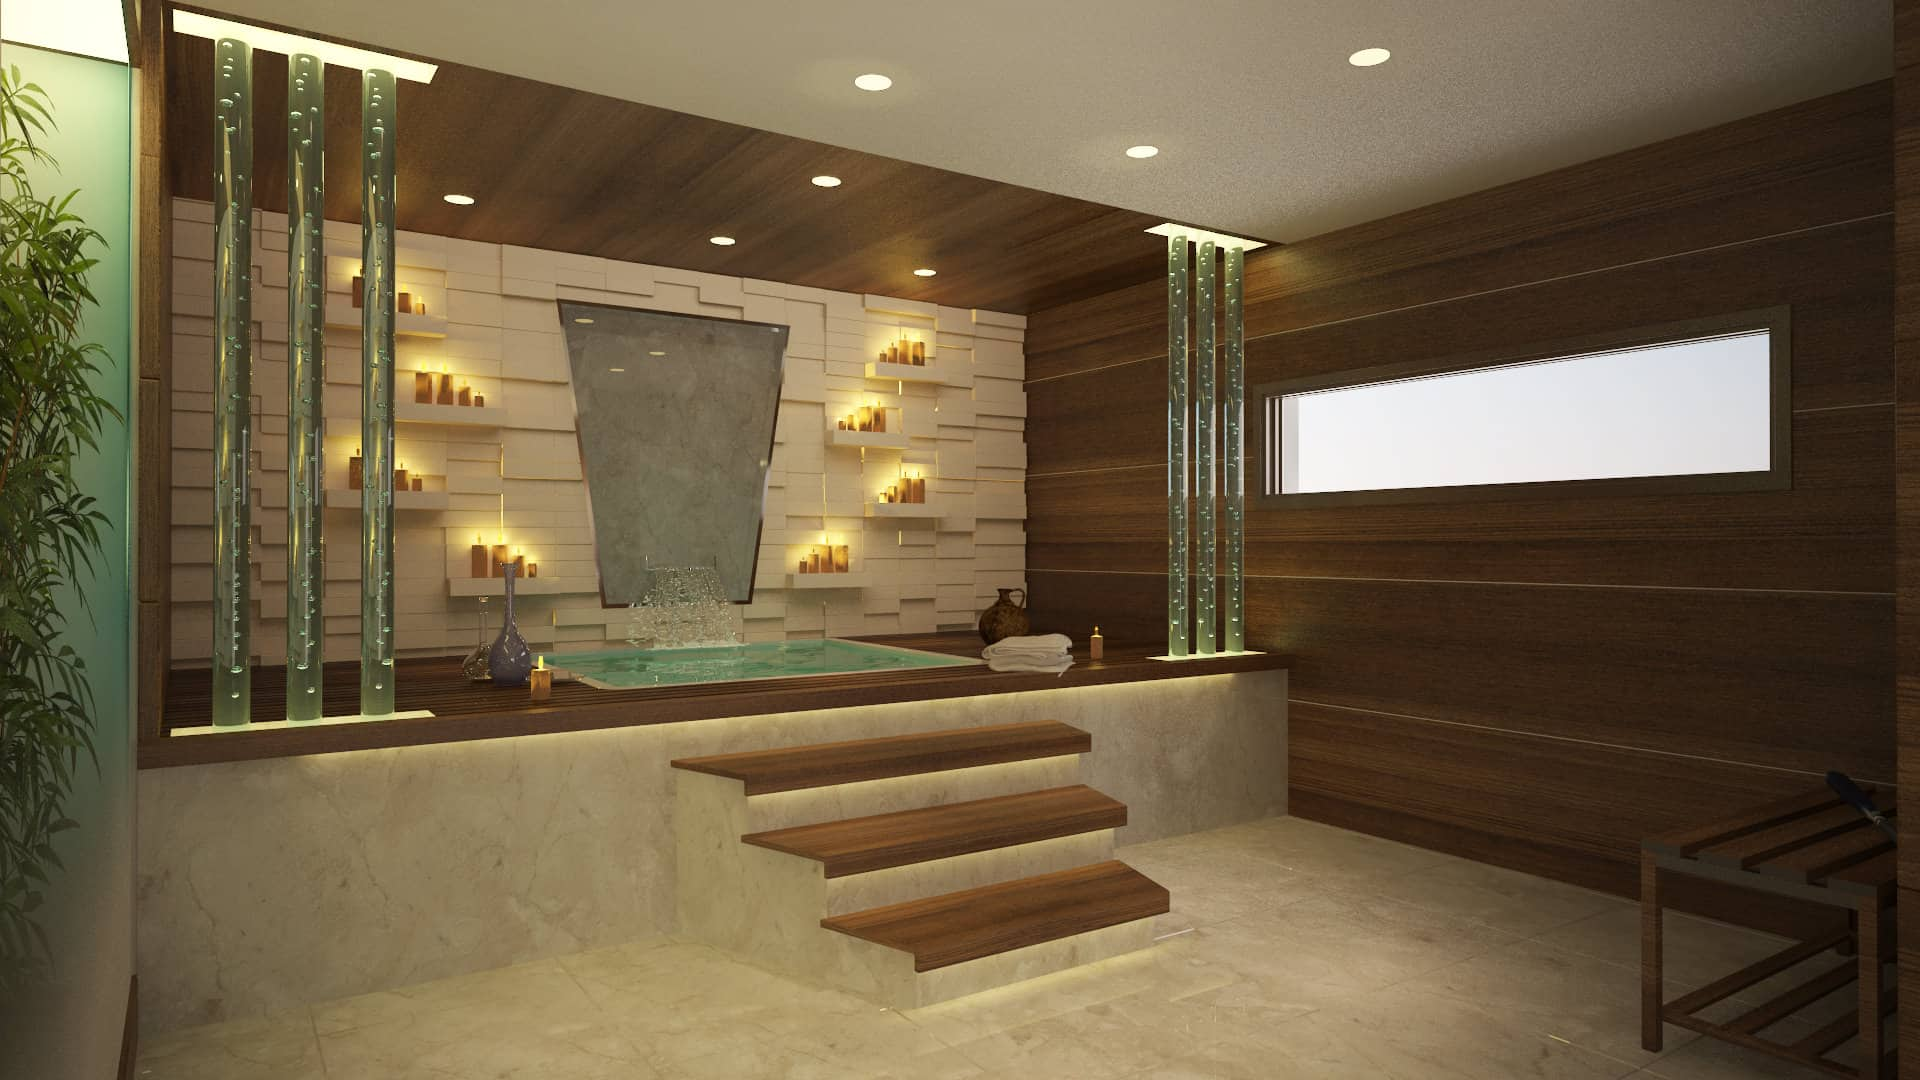 A deluxe indoor hot tub features a textured backdrop wall with shelves topped with soothing candles and a fountain as the focal point. It is designed with lovely glass pillars highlighting the beauty of the rectangular tub.